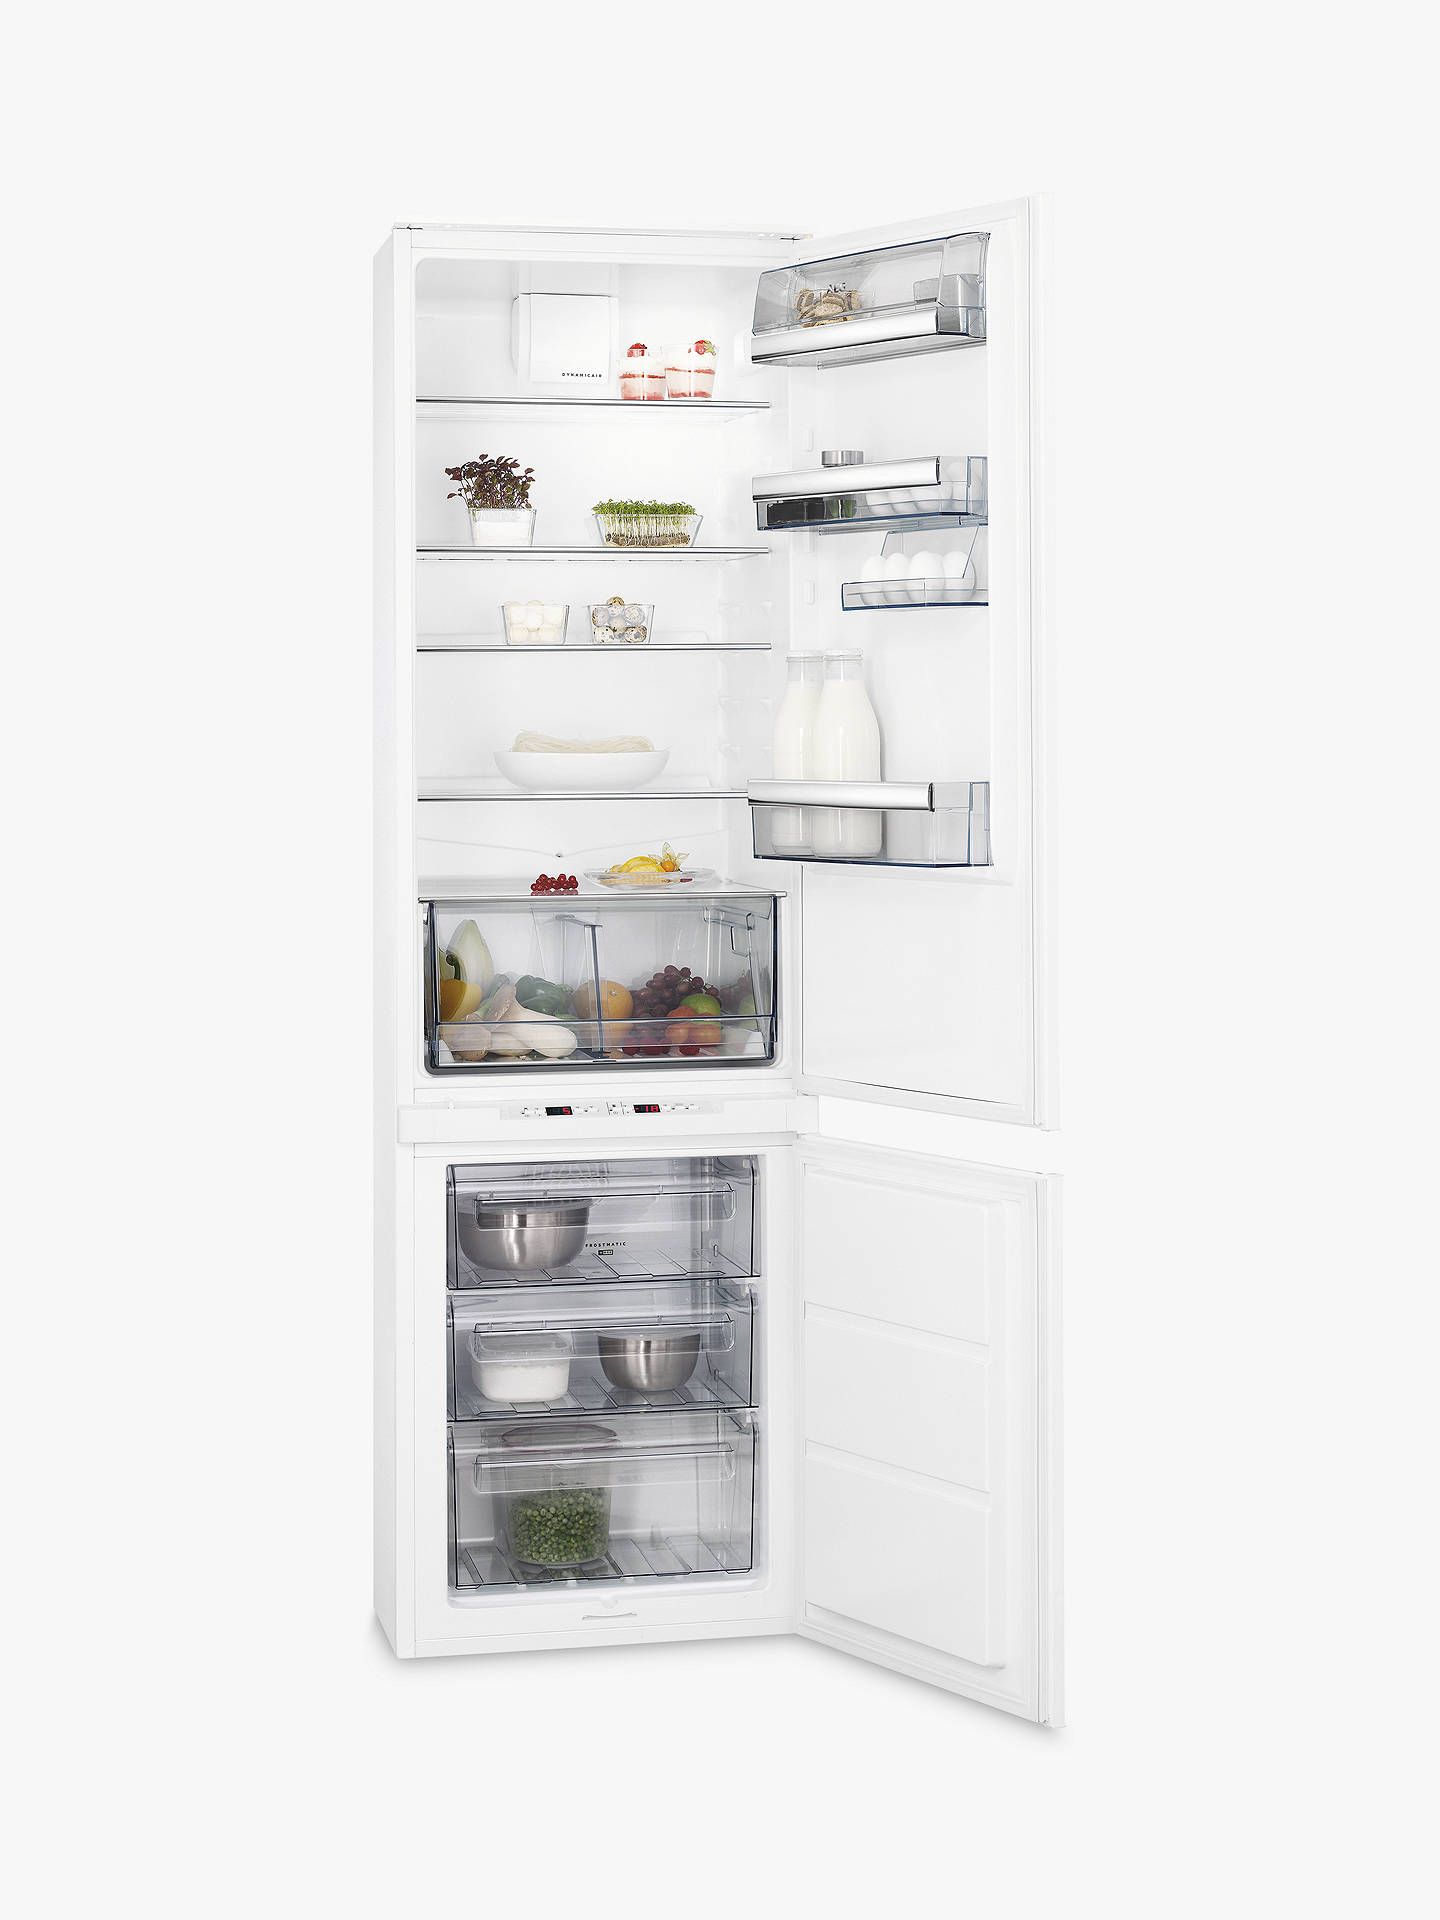 BuyAEG SCE8191VTS Integrated Fridge Freezer, A+ Energy Rating, 54cm Wide, White Online at johnlewis.com